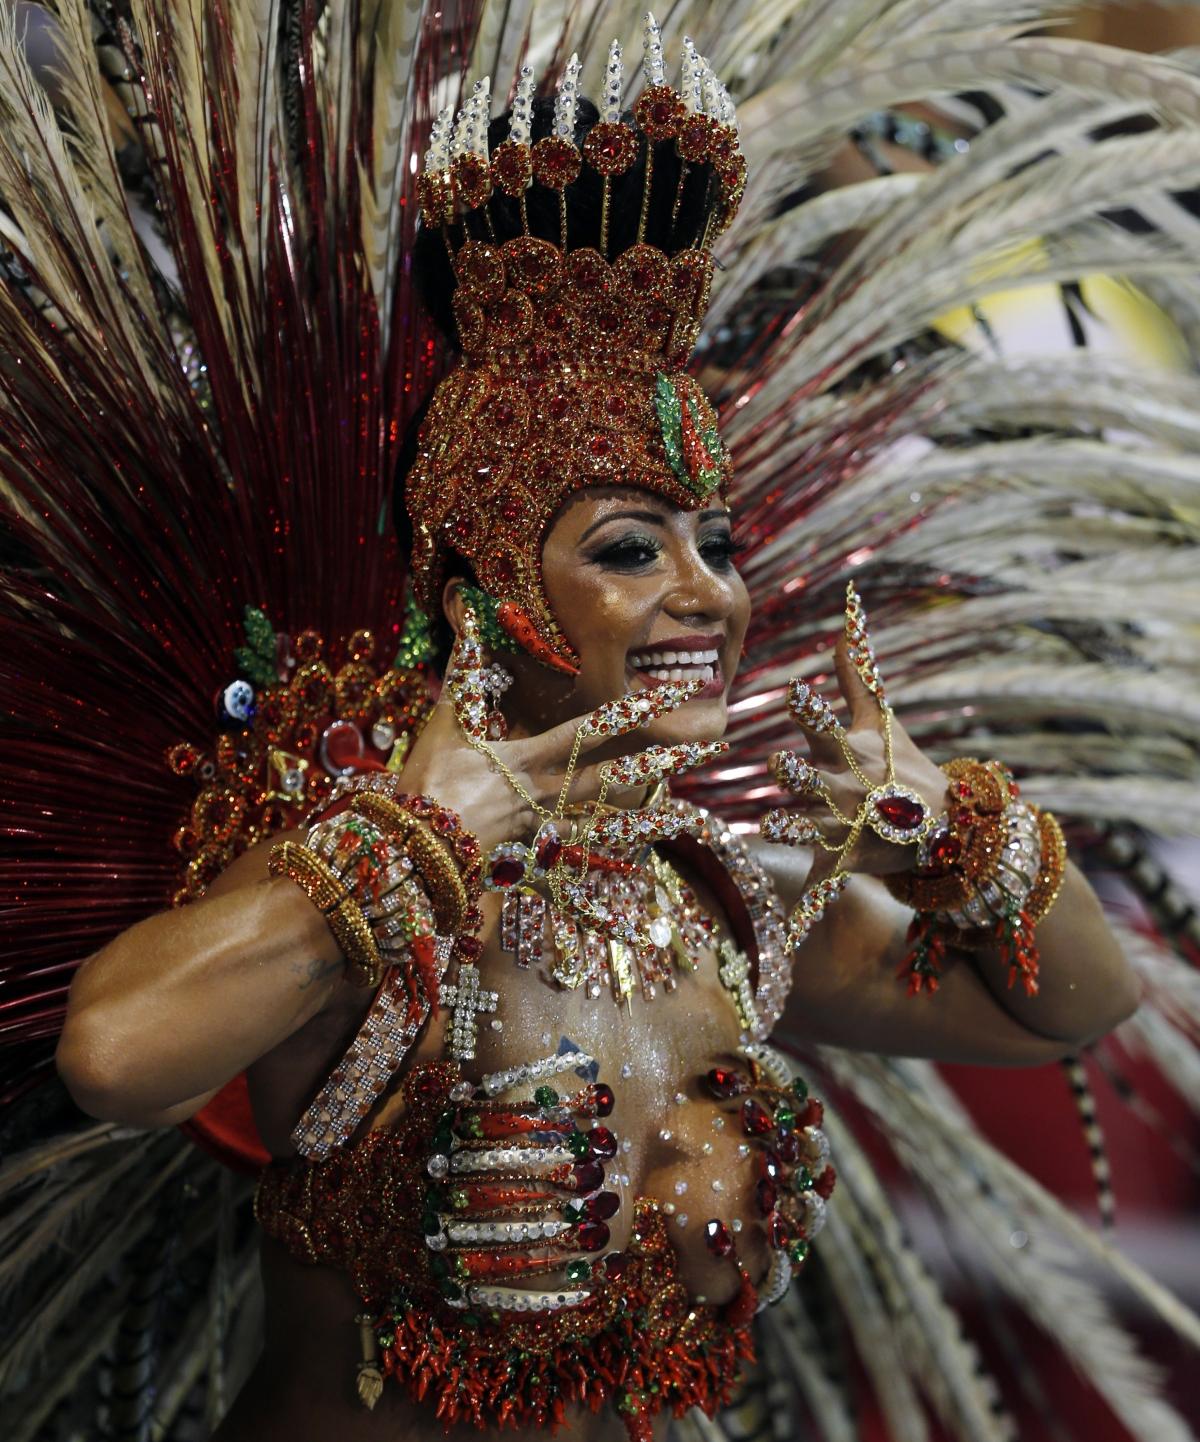 A reveller from the Aguia de Ouro samba school takes part in the second night of the Special Group category of the annual Carnival parade in Sao Paulo's Sambadrome March 2, 2014.